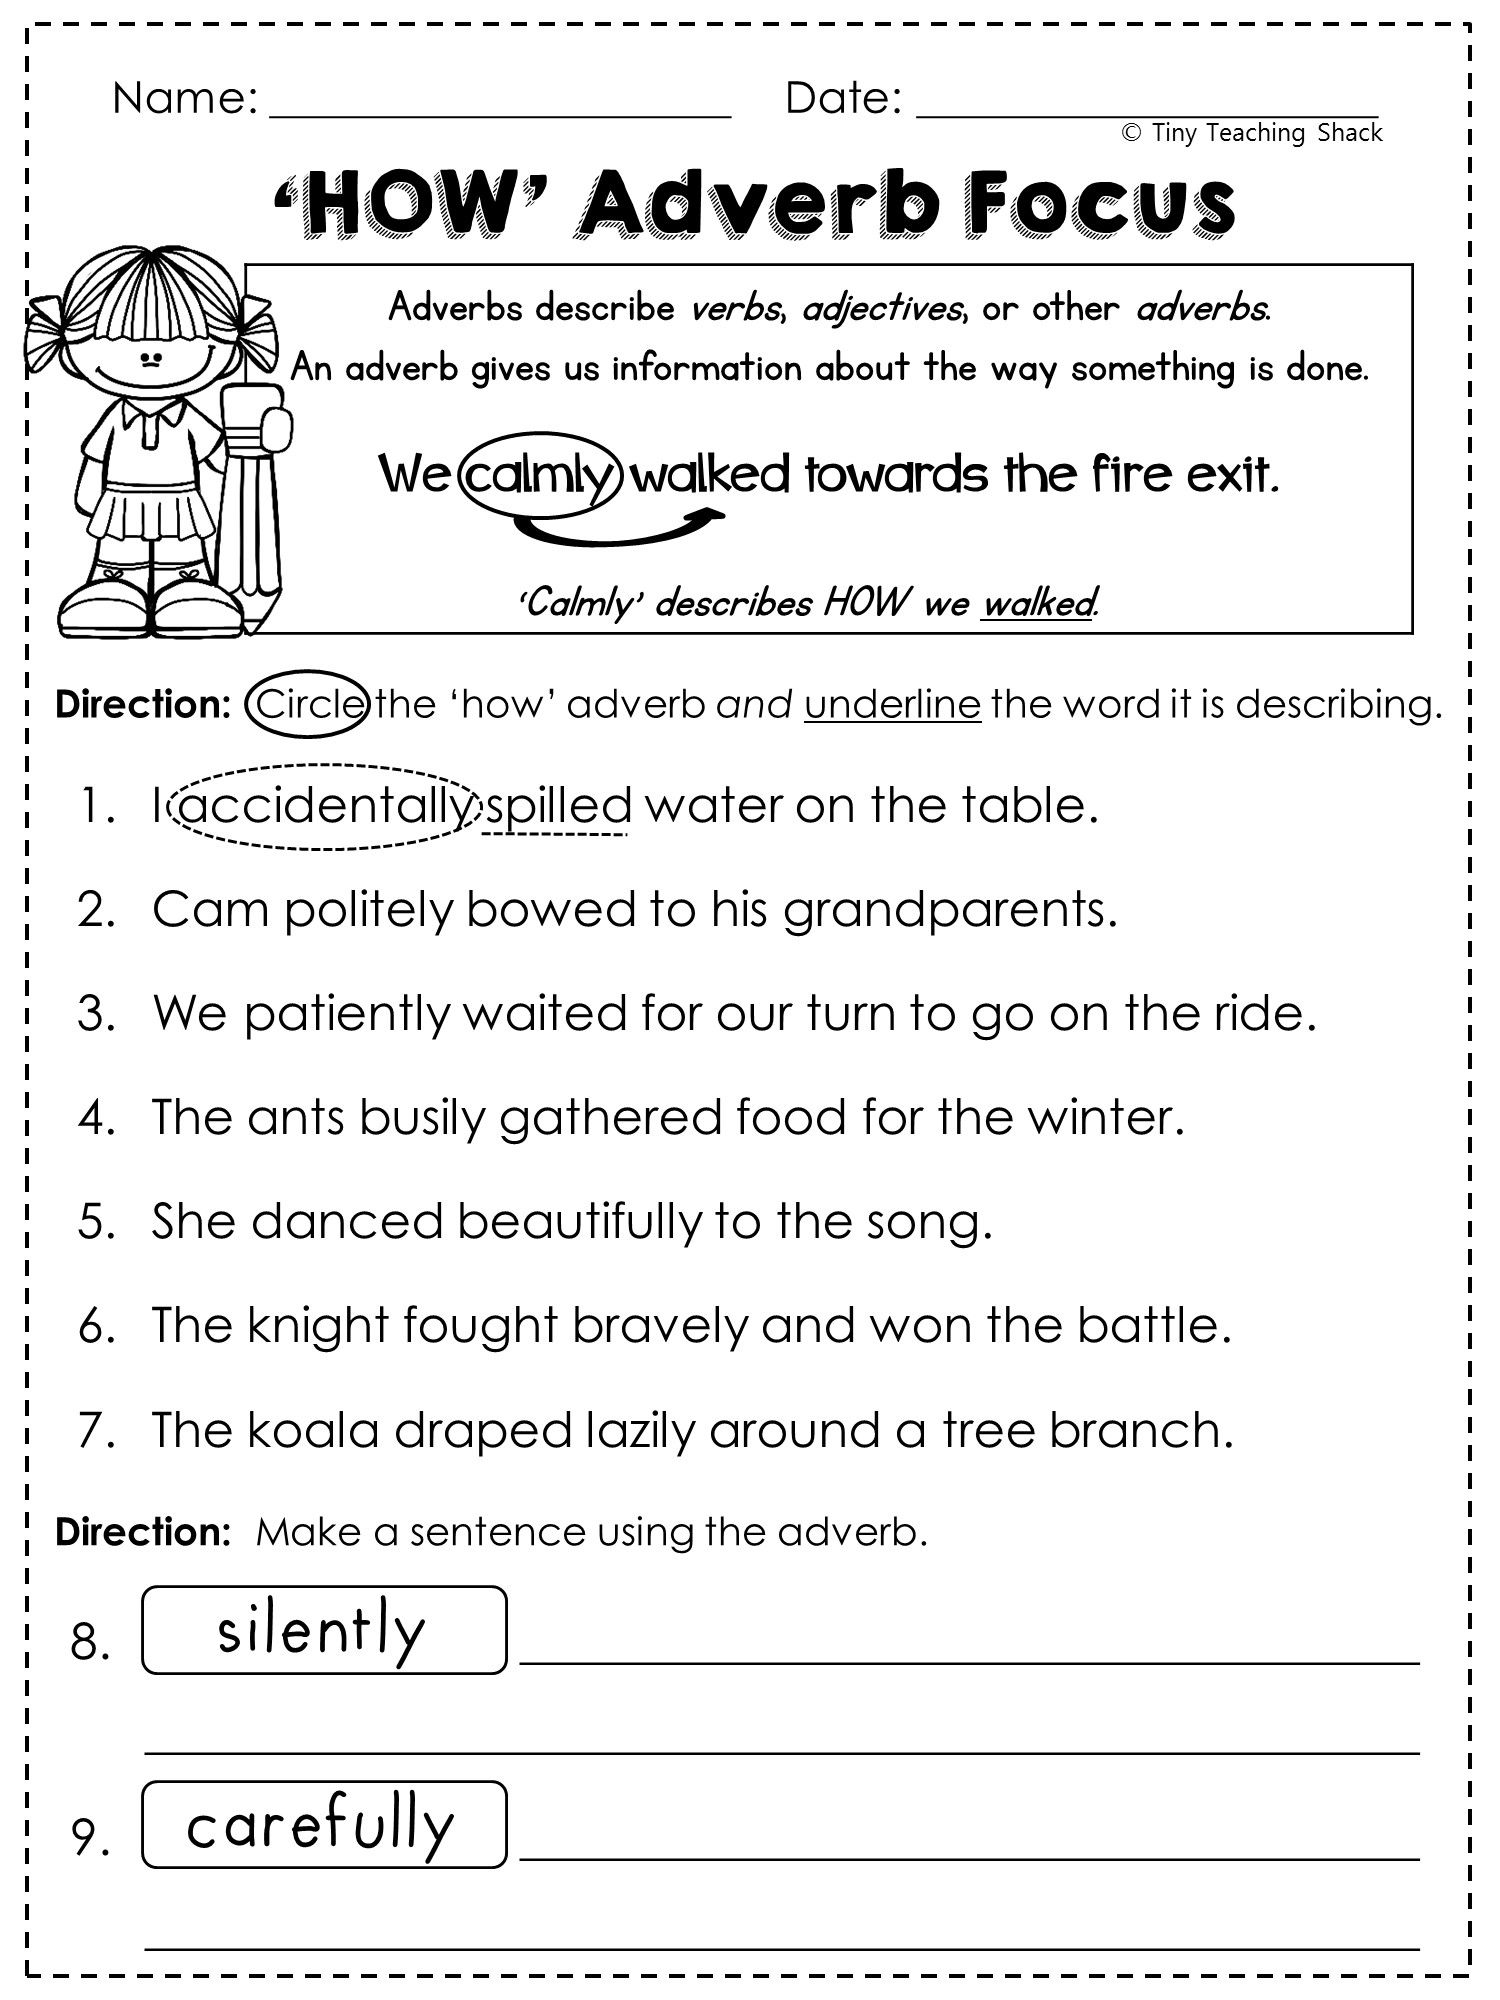 FREE adverb worksheet | Printables | Pinterest | Adverbs, Worksheets ...